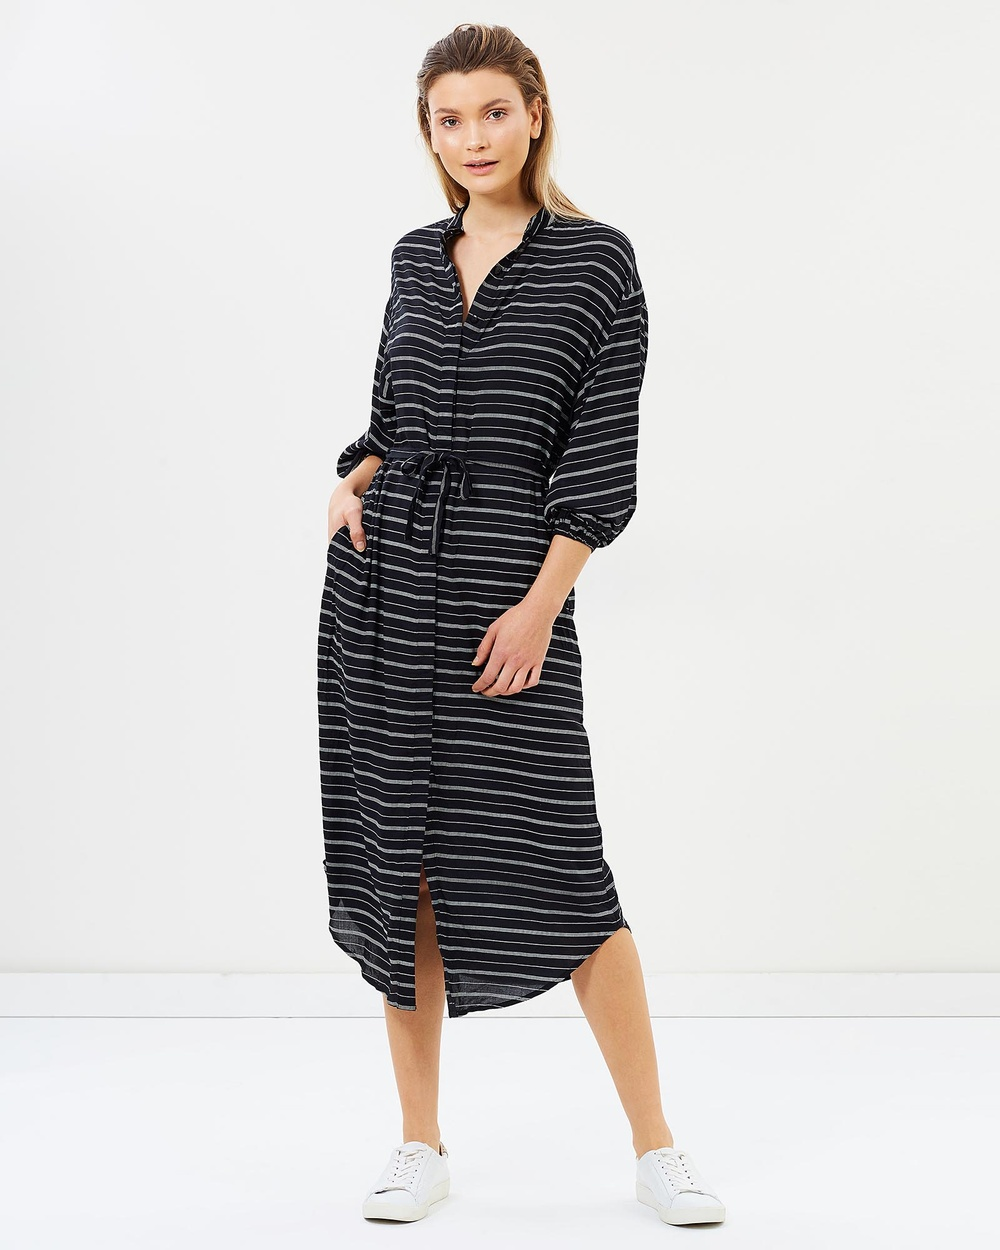 Lilya Rosso Dress Dresses Thin Black Stripe Rosso Dress